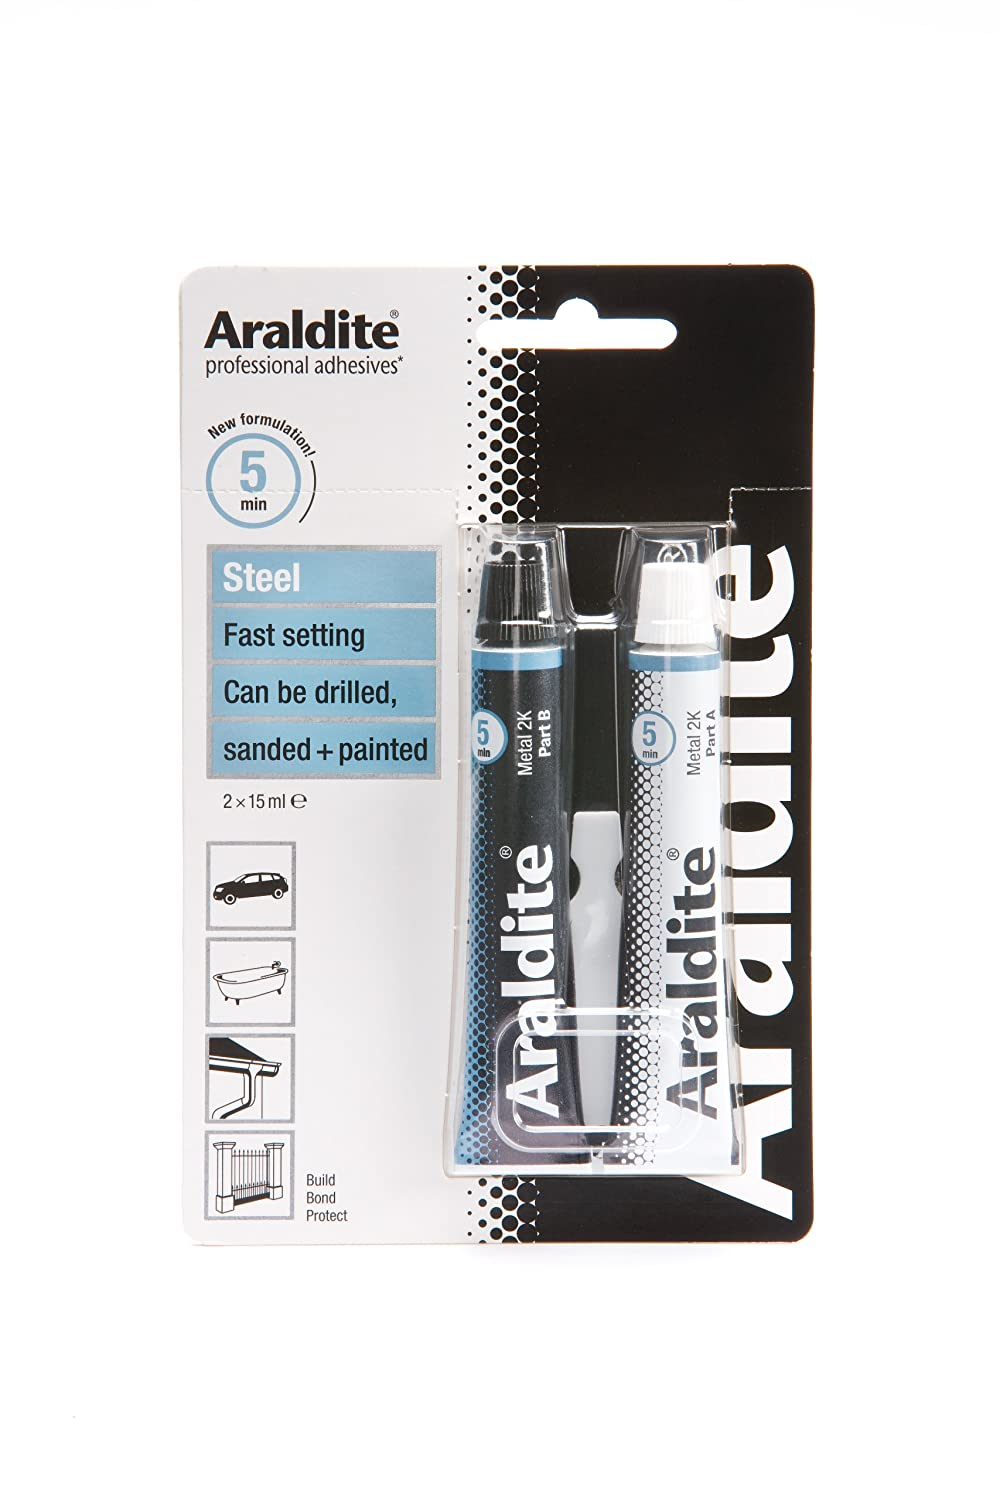 Araldite ARA-400010 - Pegamento de dos componentes (tamañ o: 15ml) Huntsman Advanced Materials